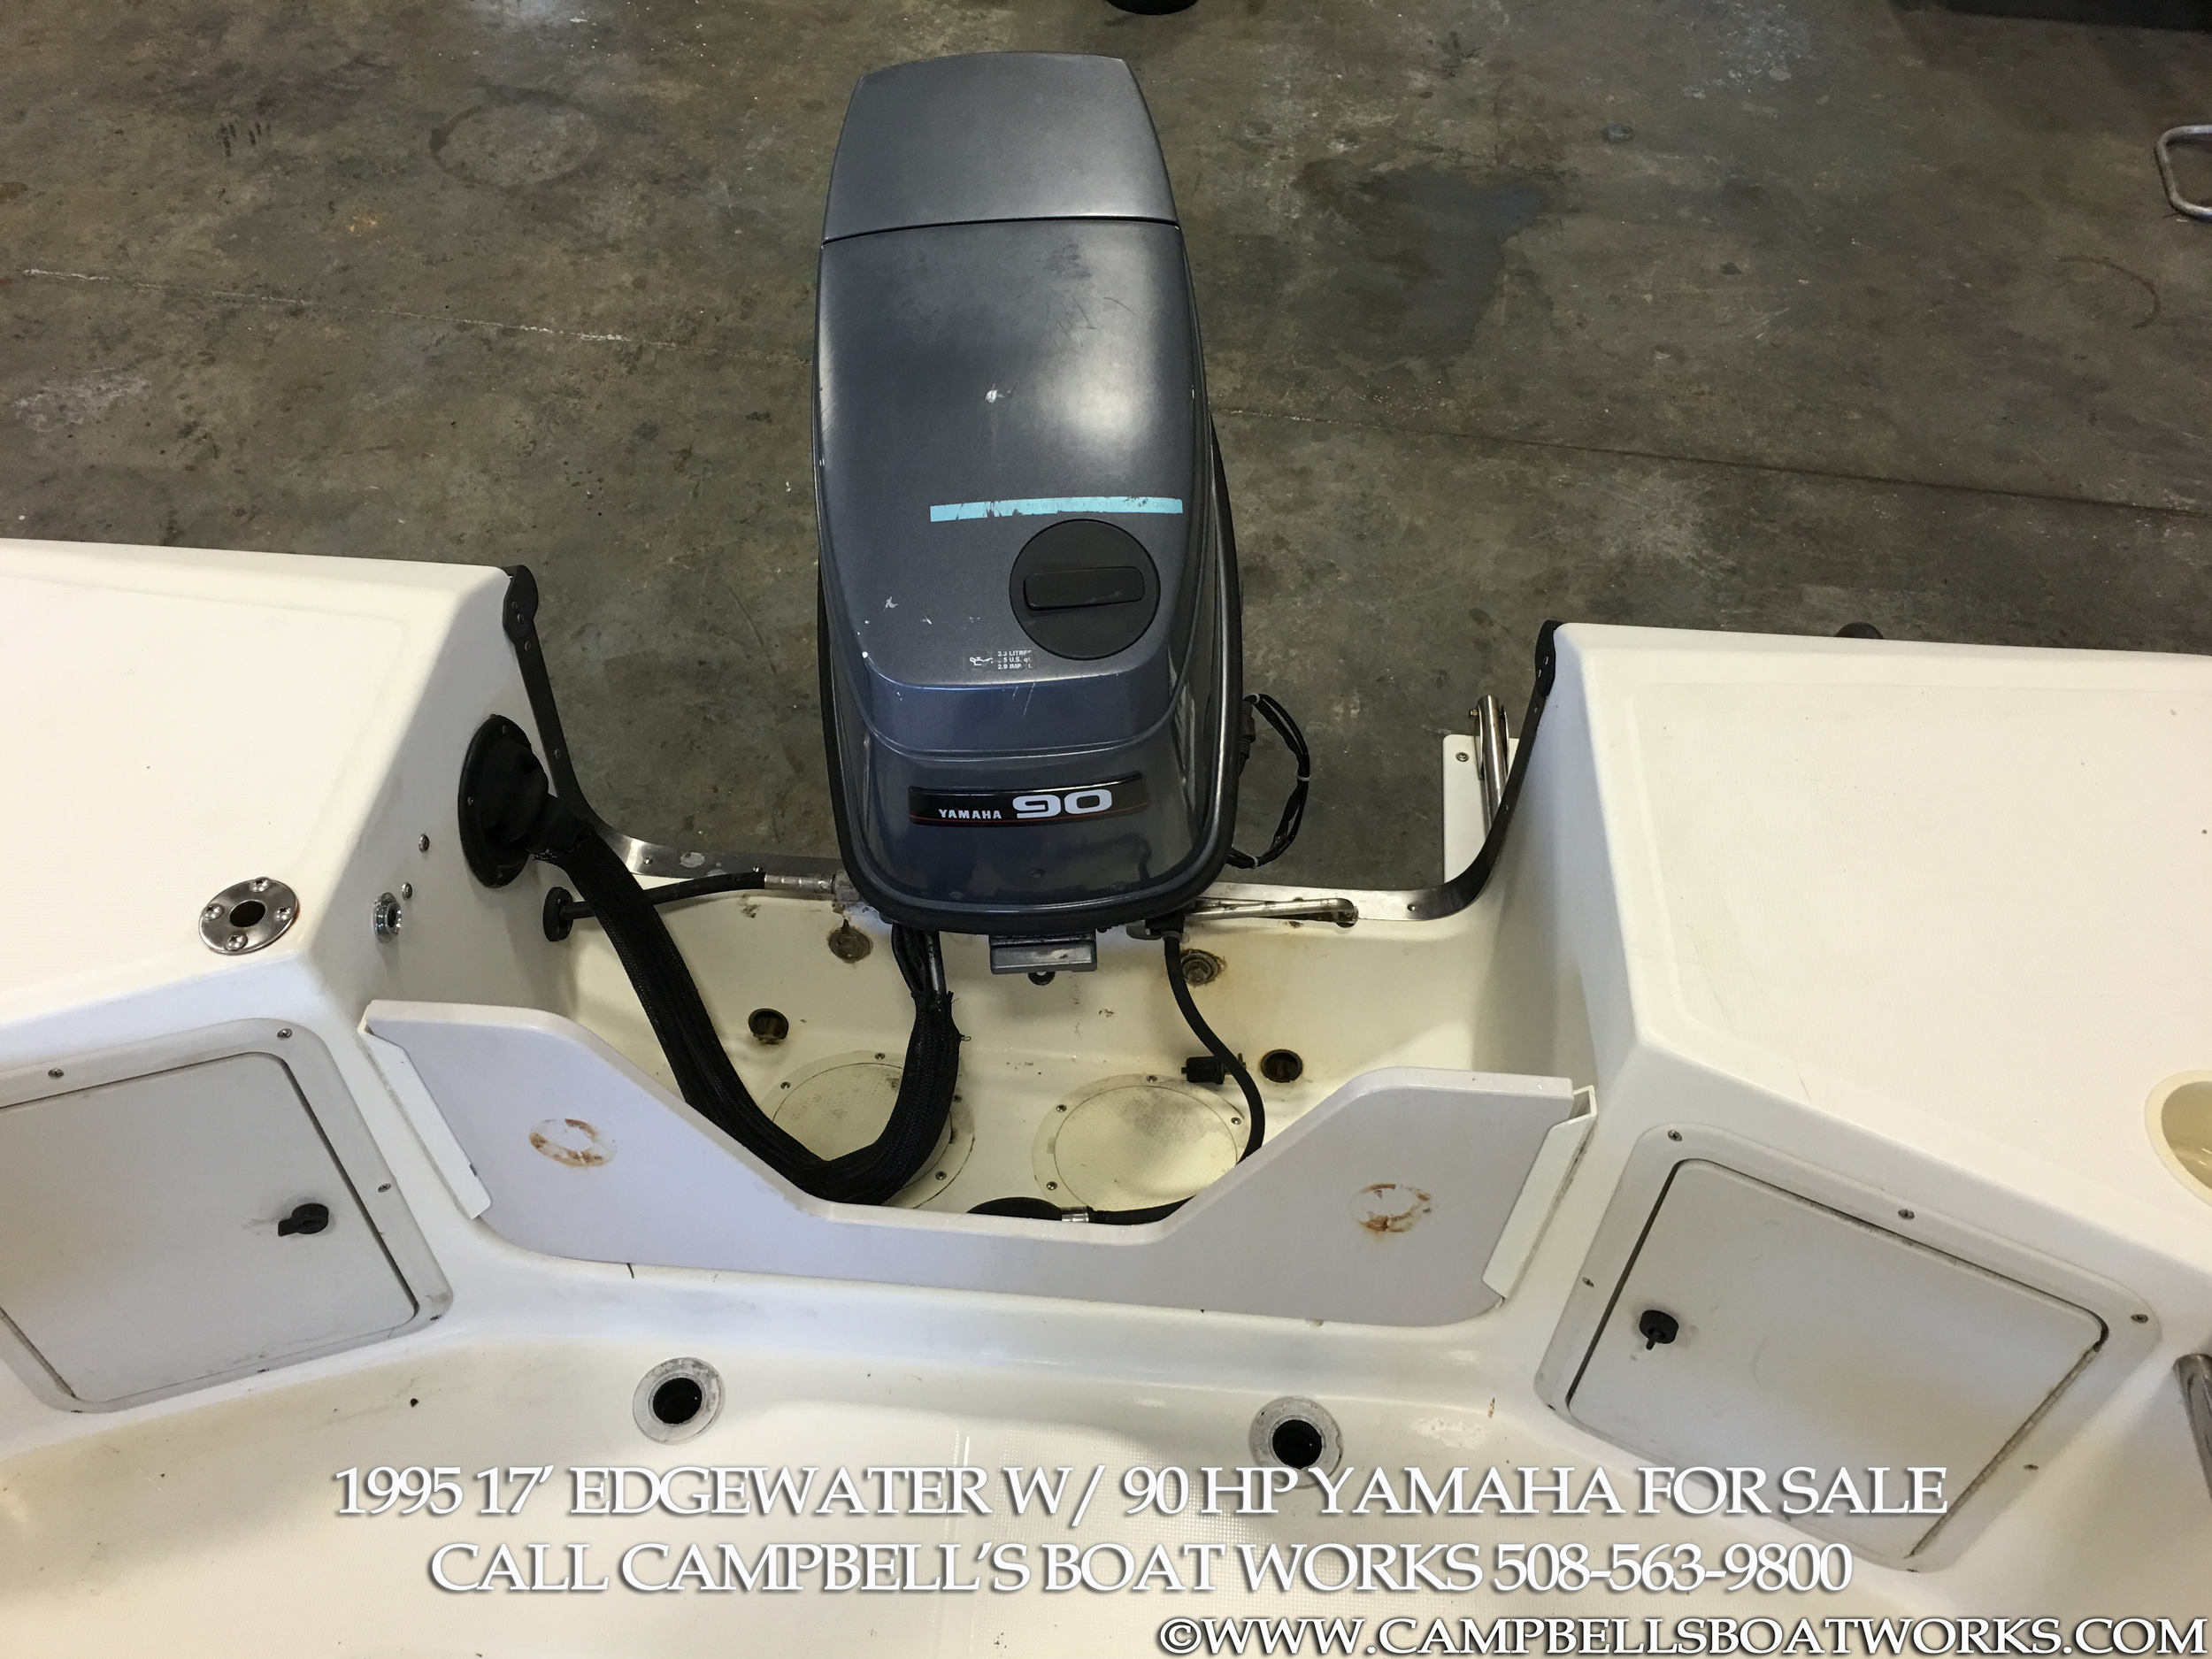 edgewater-sport-17-dual-console-boat-for-sale-yamaha-outboard.png